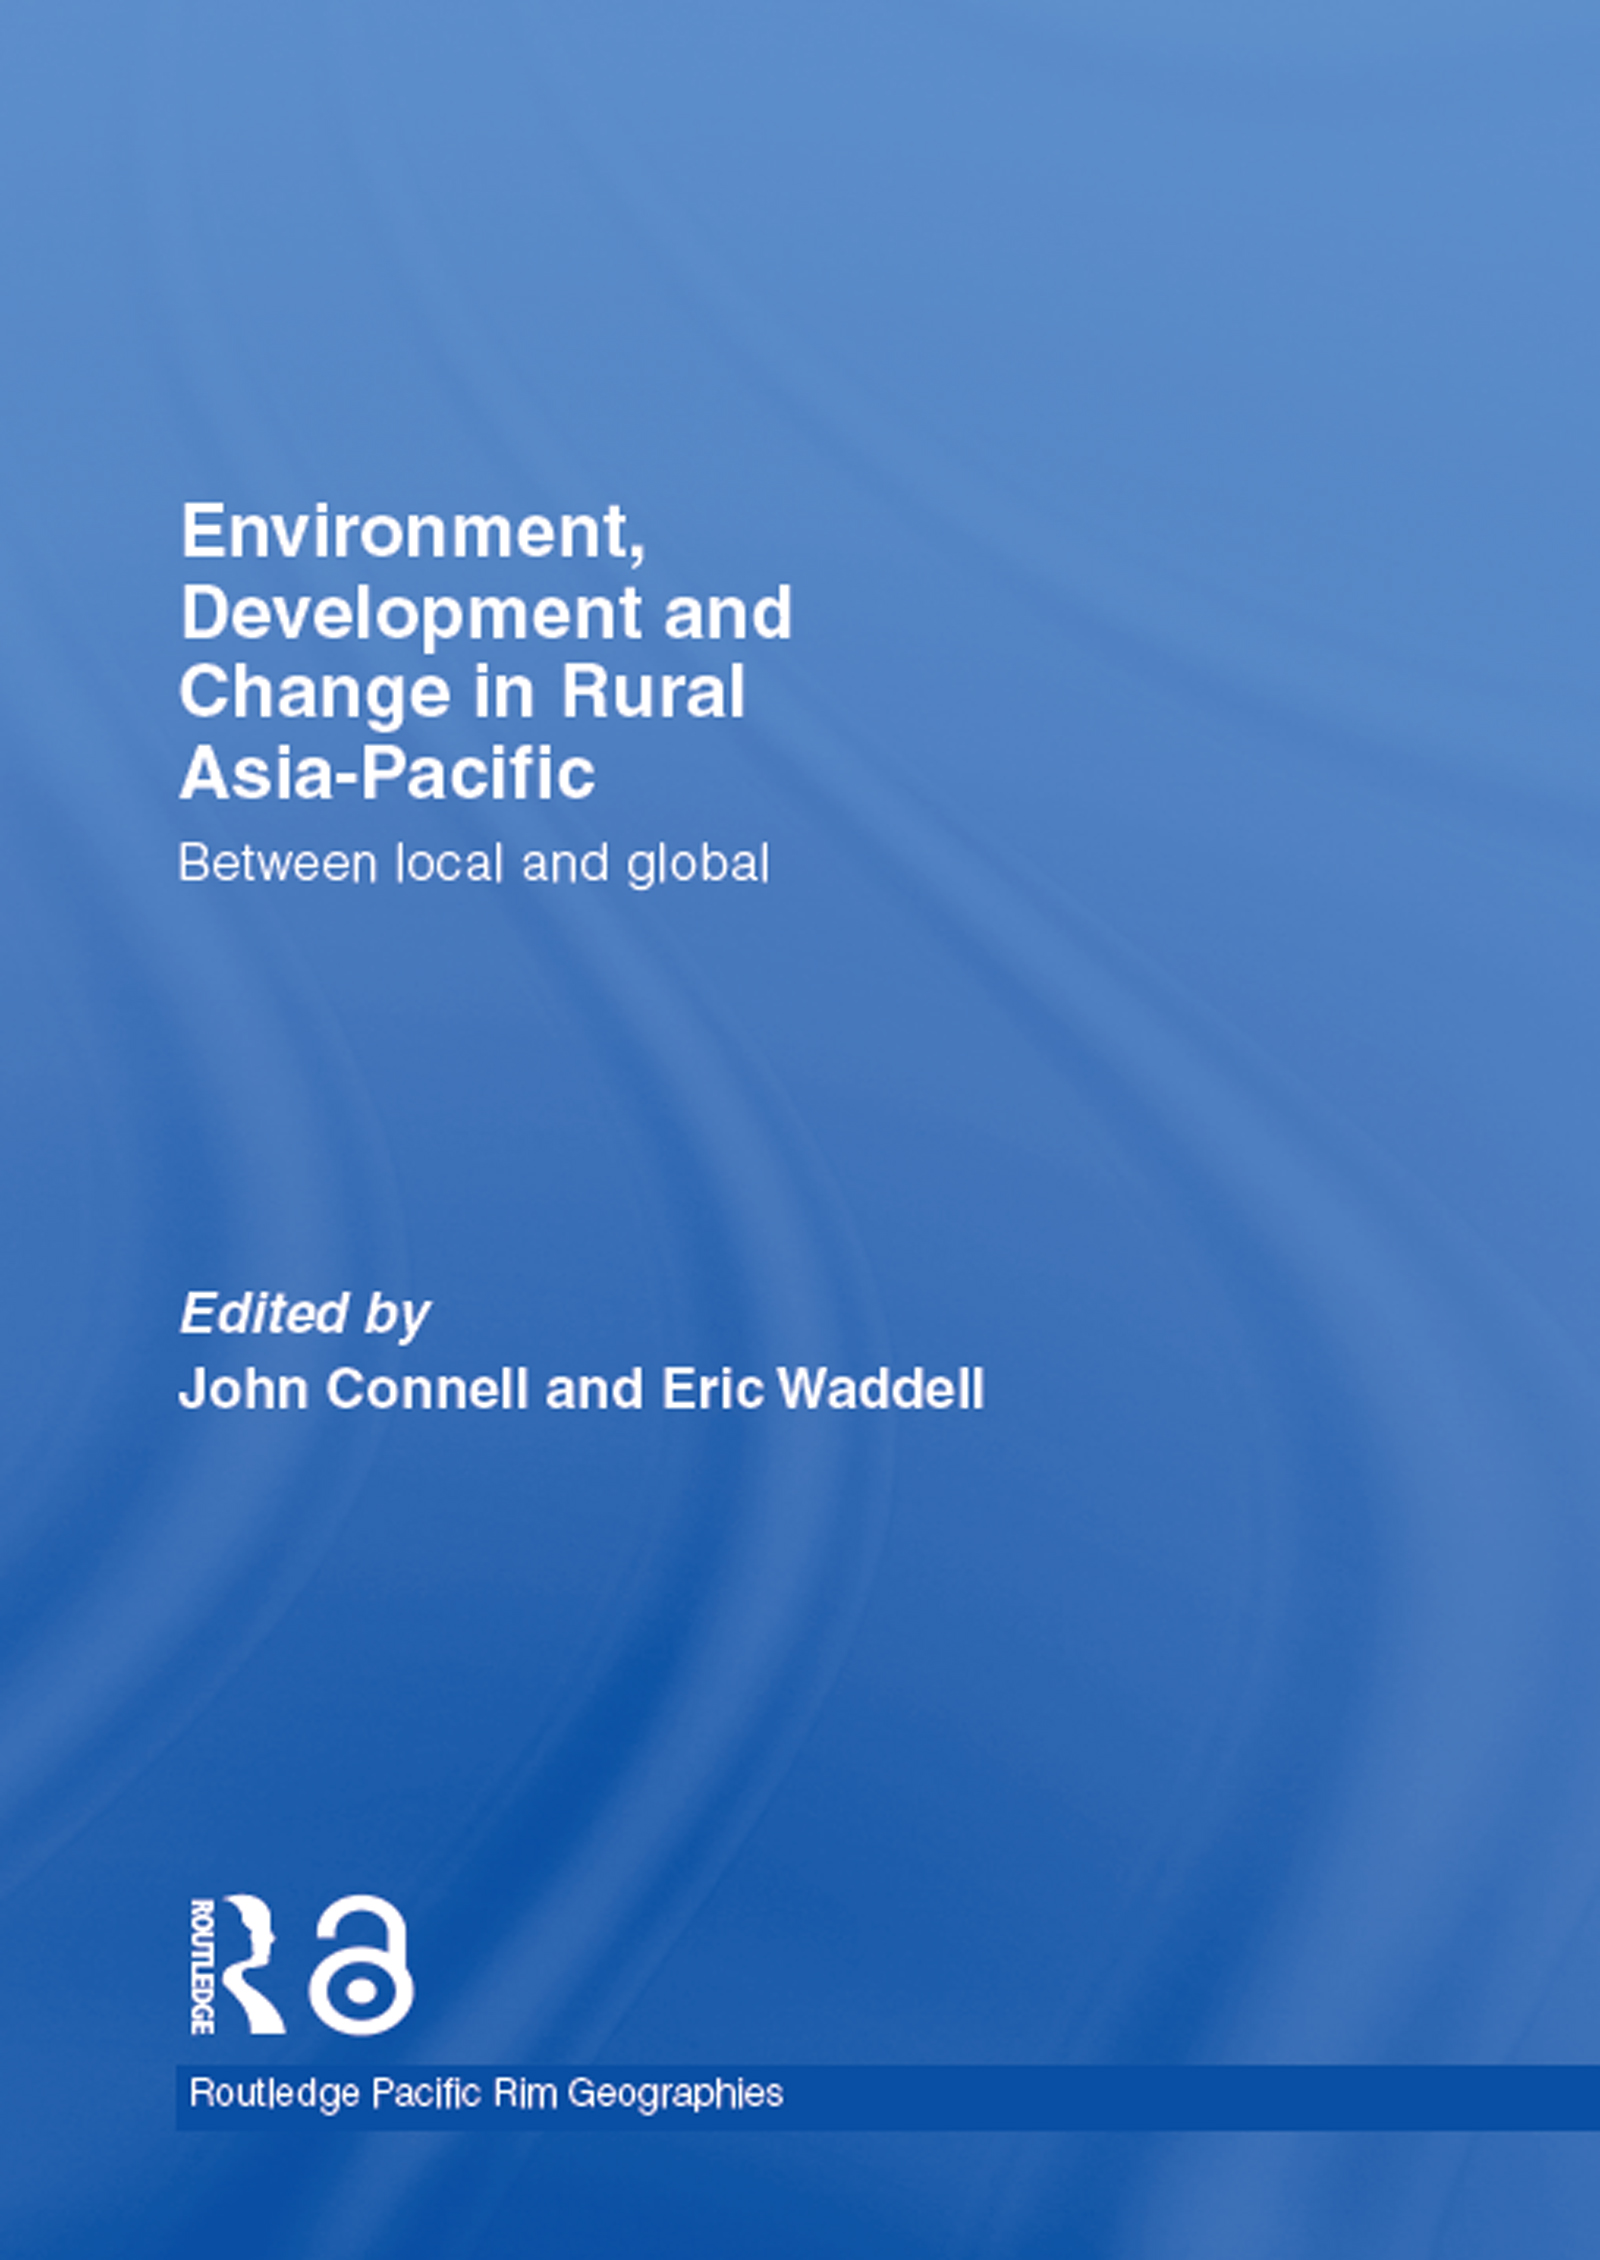 Download Ebook Environment, Development and Change in Rural Asia-Pacific by John Connell Pdf